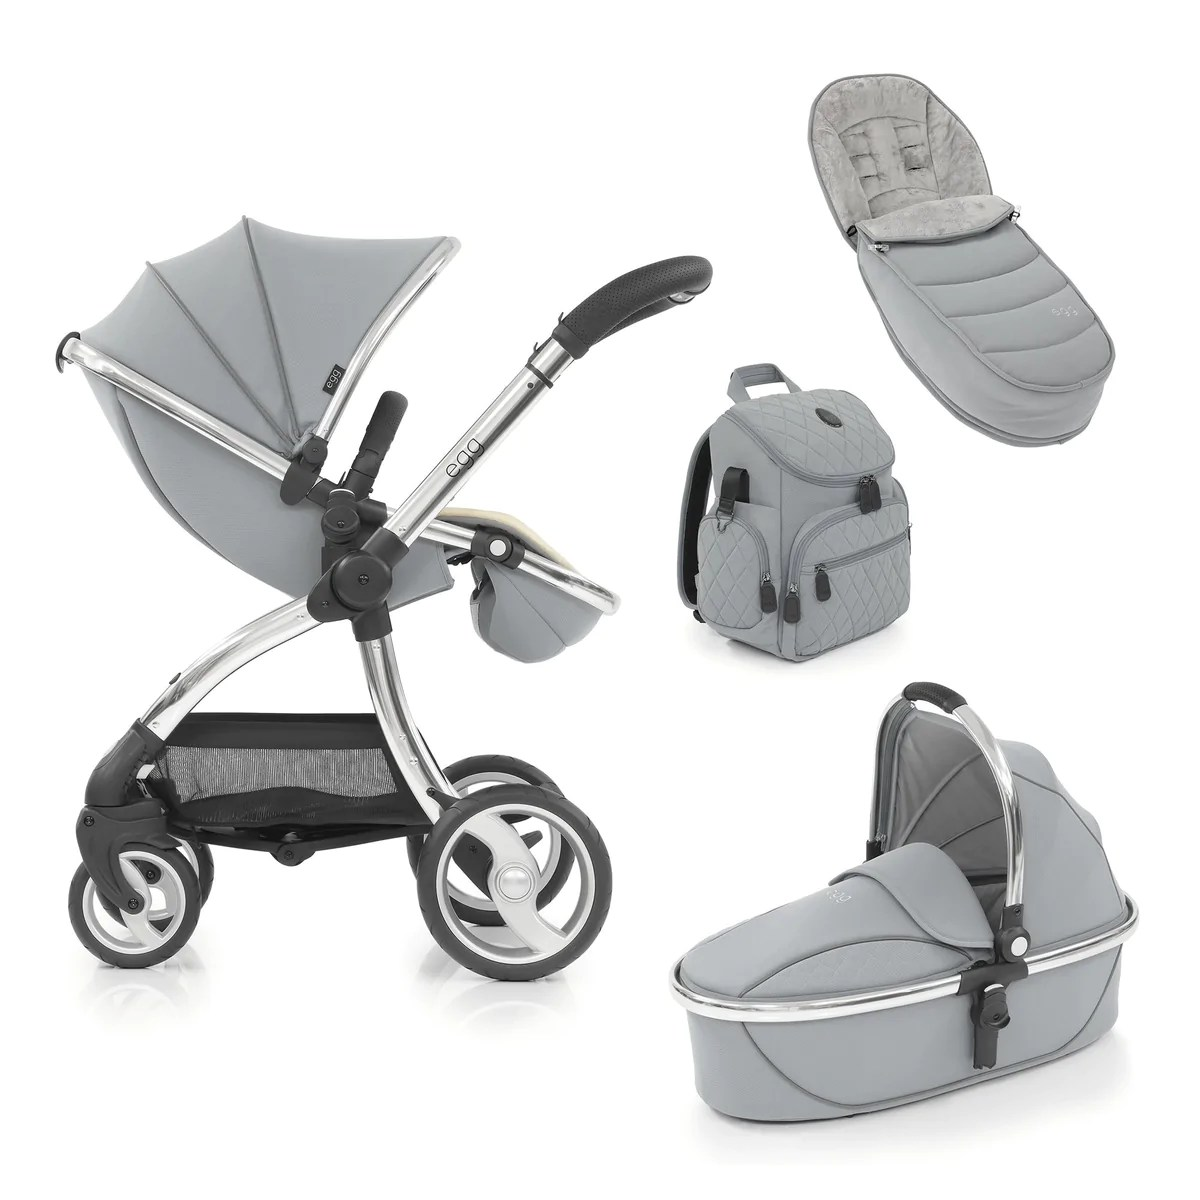 Egg Pram Replacement Wheels Egg Stroller 4 Piece Bundle Frosted Steel